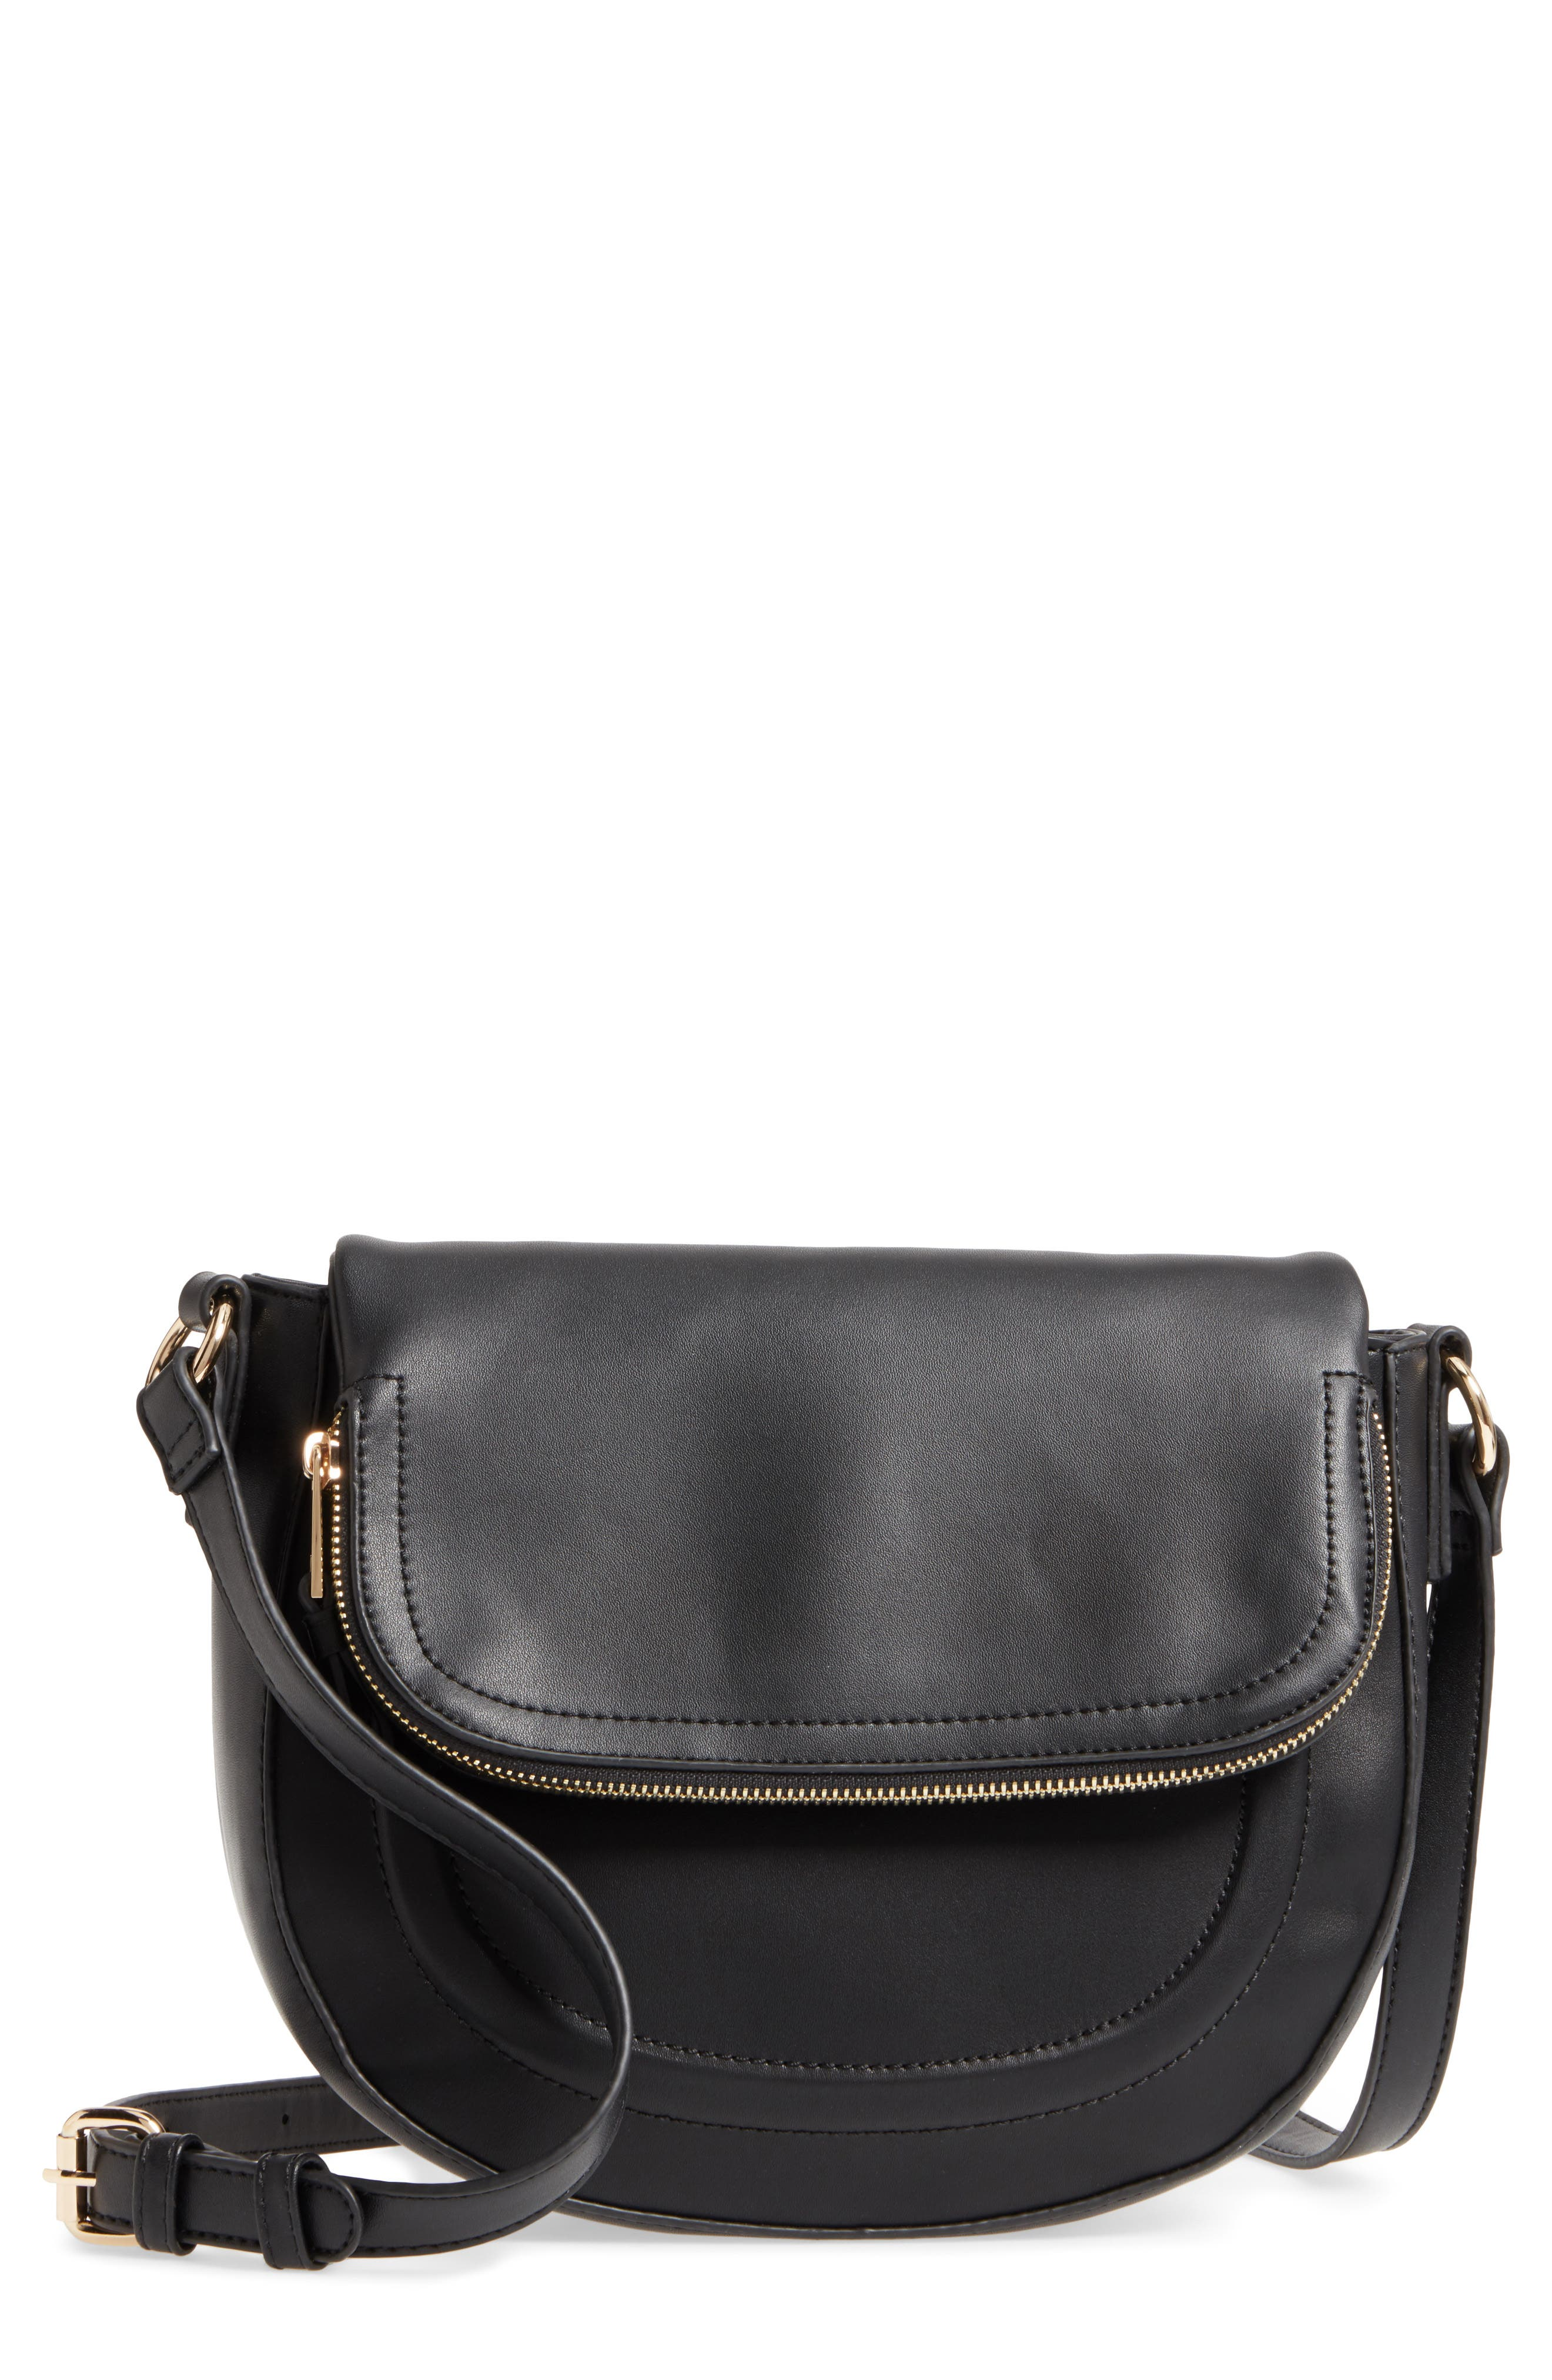 Alternate Image 1 Selected - Sole Society Adden Faux Leather Crossbody Bag